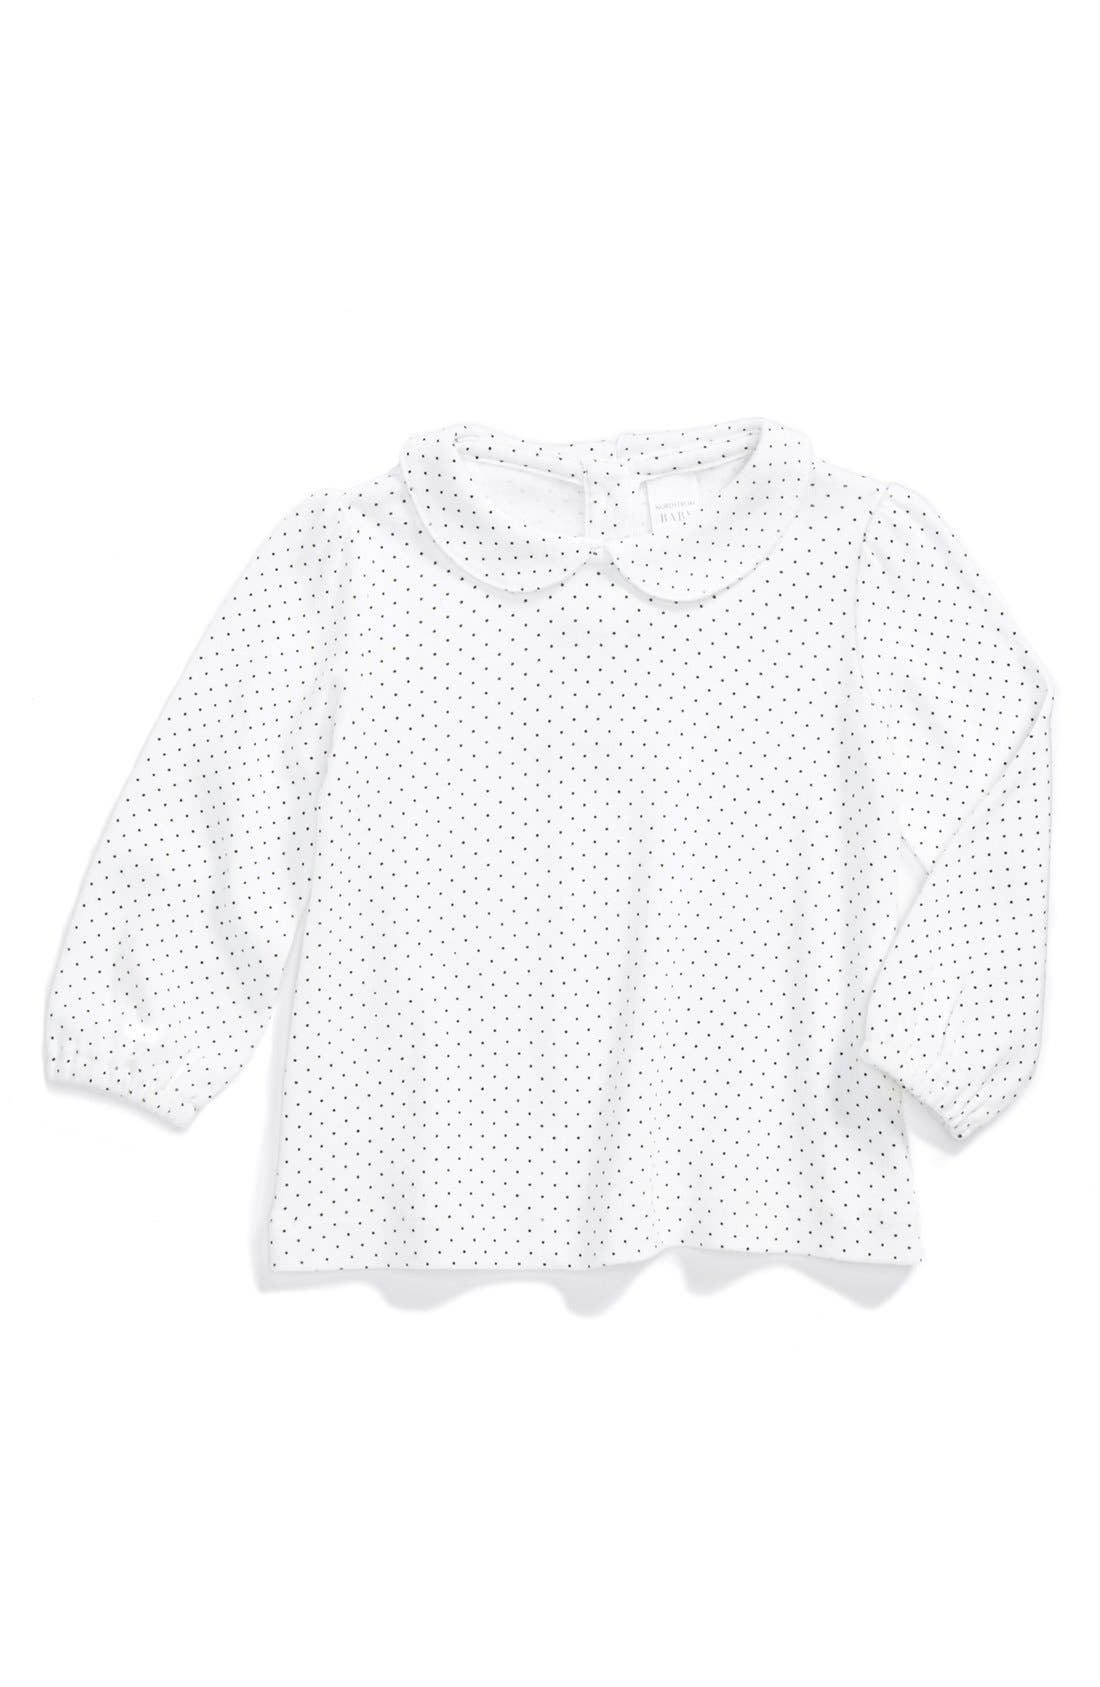 Alternate Image 1 Selected - Nordstrom Baby Long Sleeve Shirt (Baby Girls)